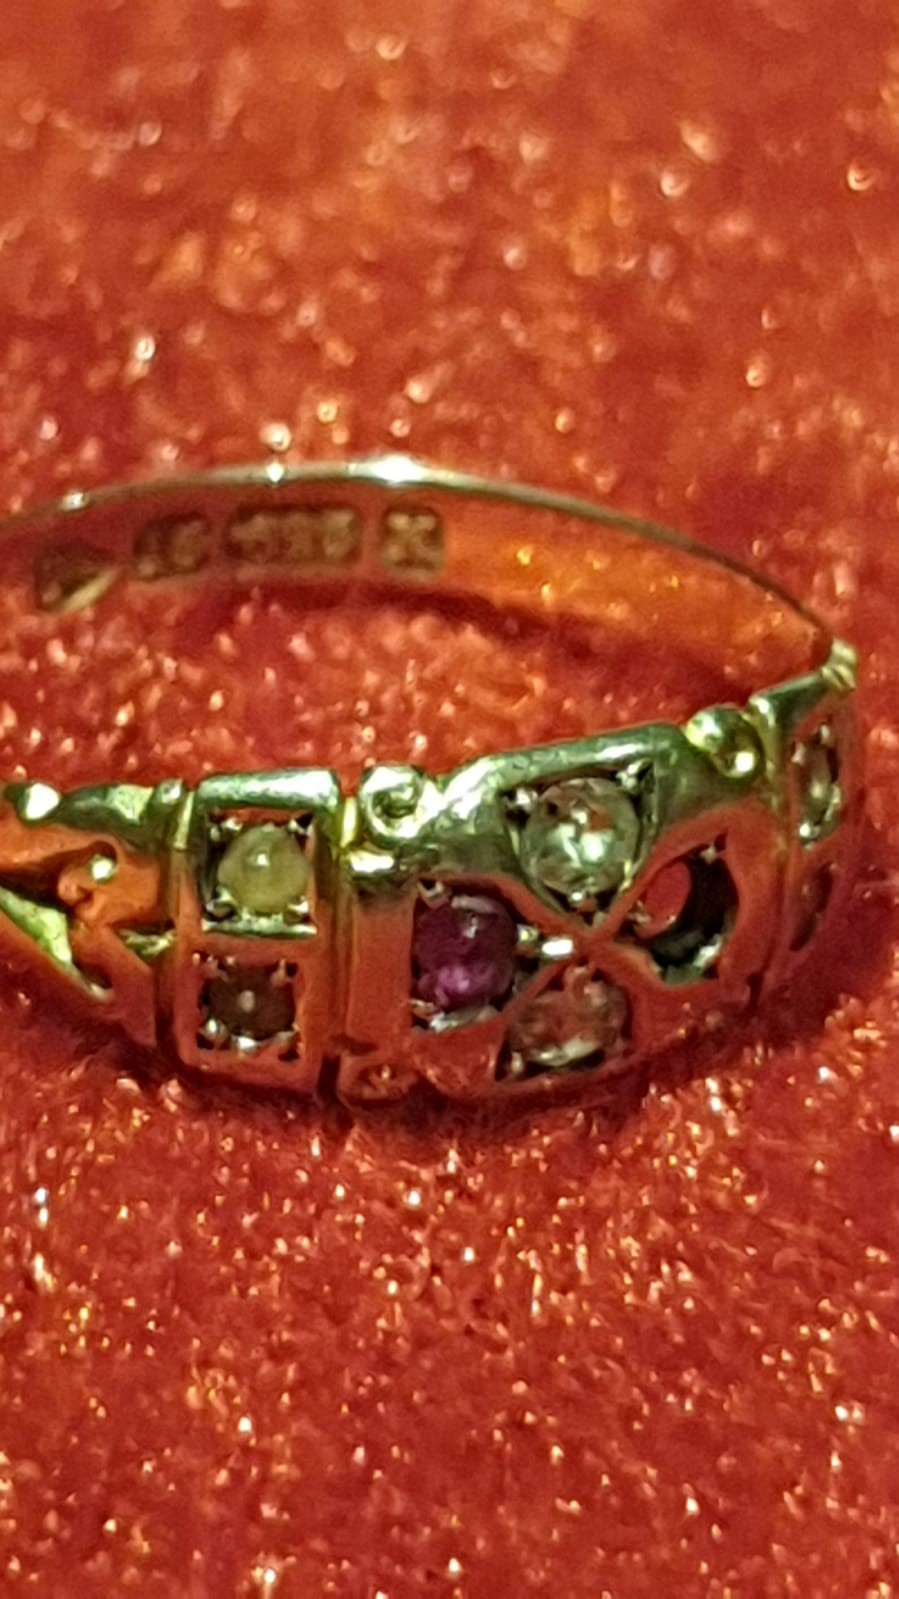 Victorian 15ct gold ring With Diamonds pearls and Ruby 1 Ruby missing 2.2g Beautiful ring. - Image 2 of 2